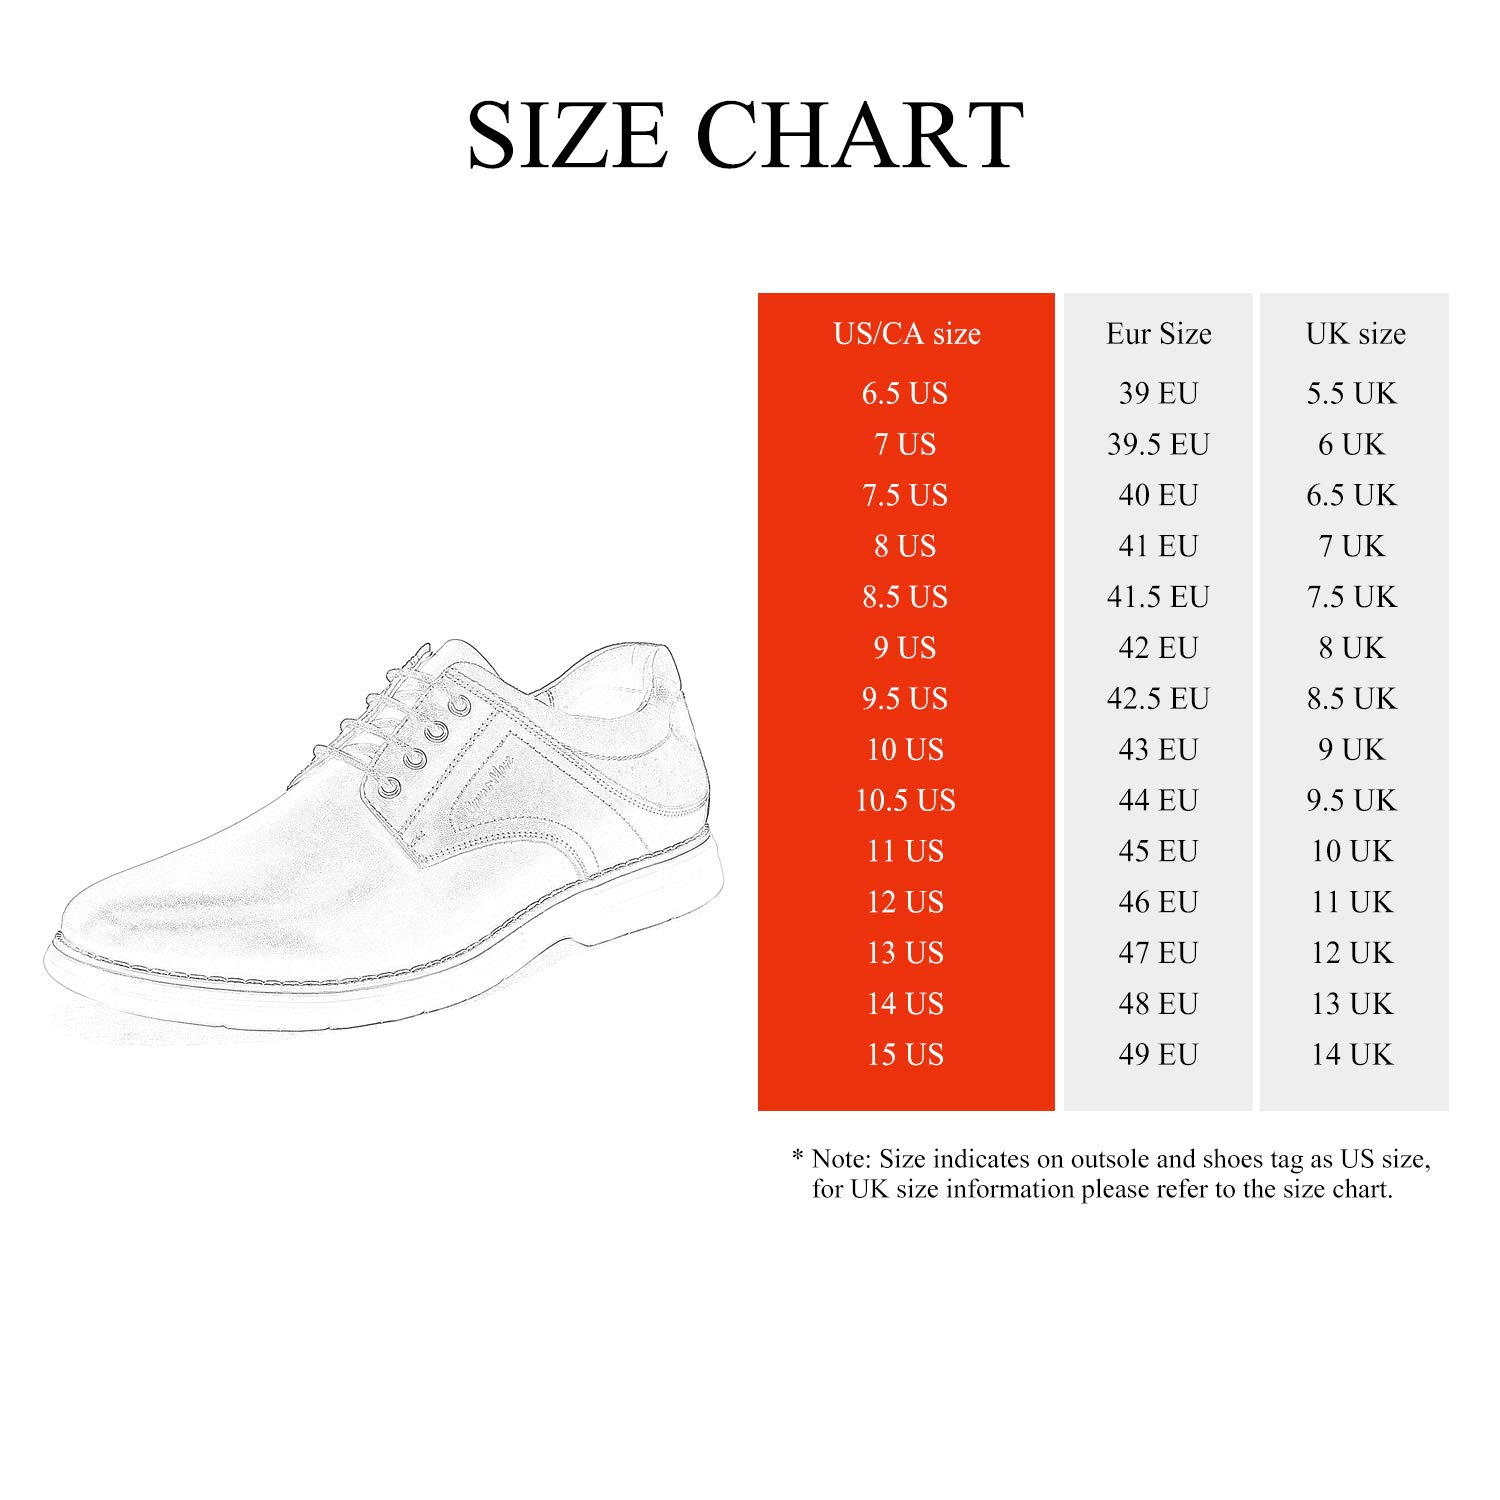 Mens-Fashion-Genuine-Leather-Business-Dress-Sneakers-Casual-Lace-up-Oxford-Shoe thumbnail 27